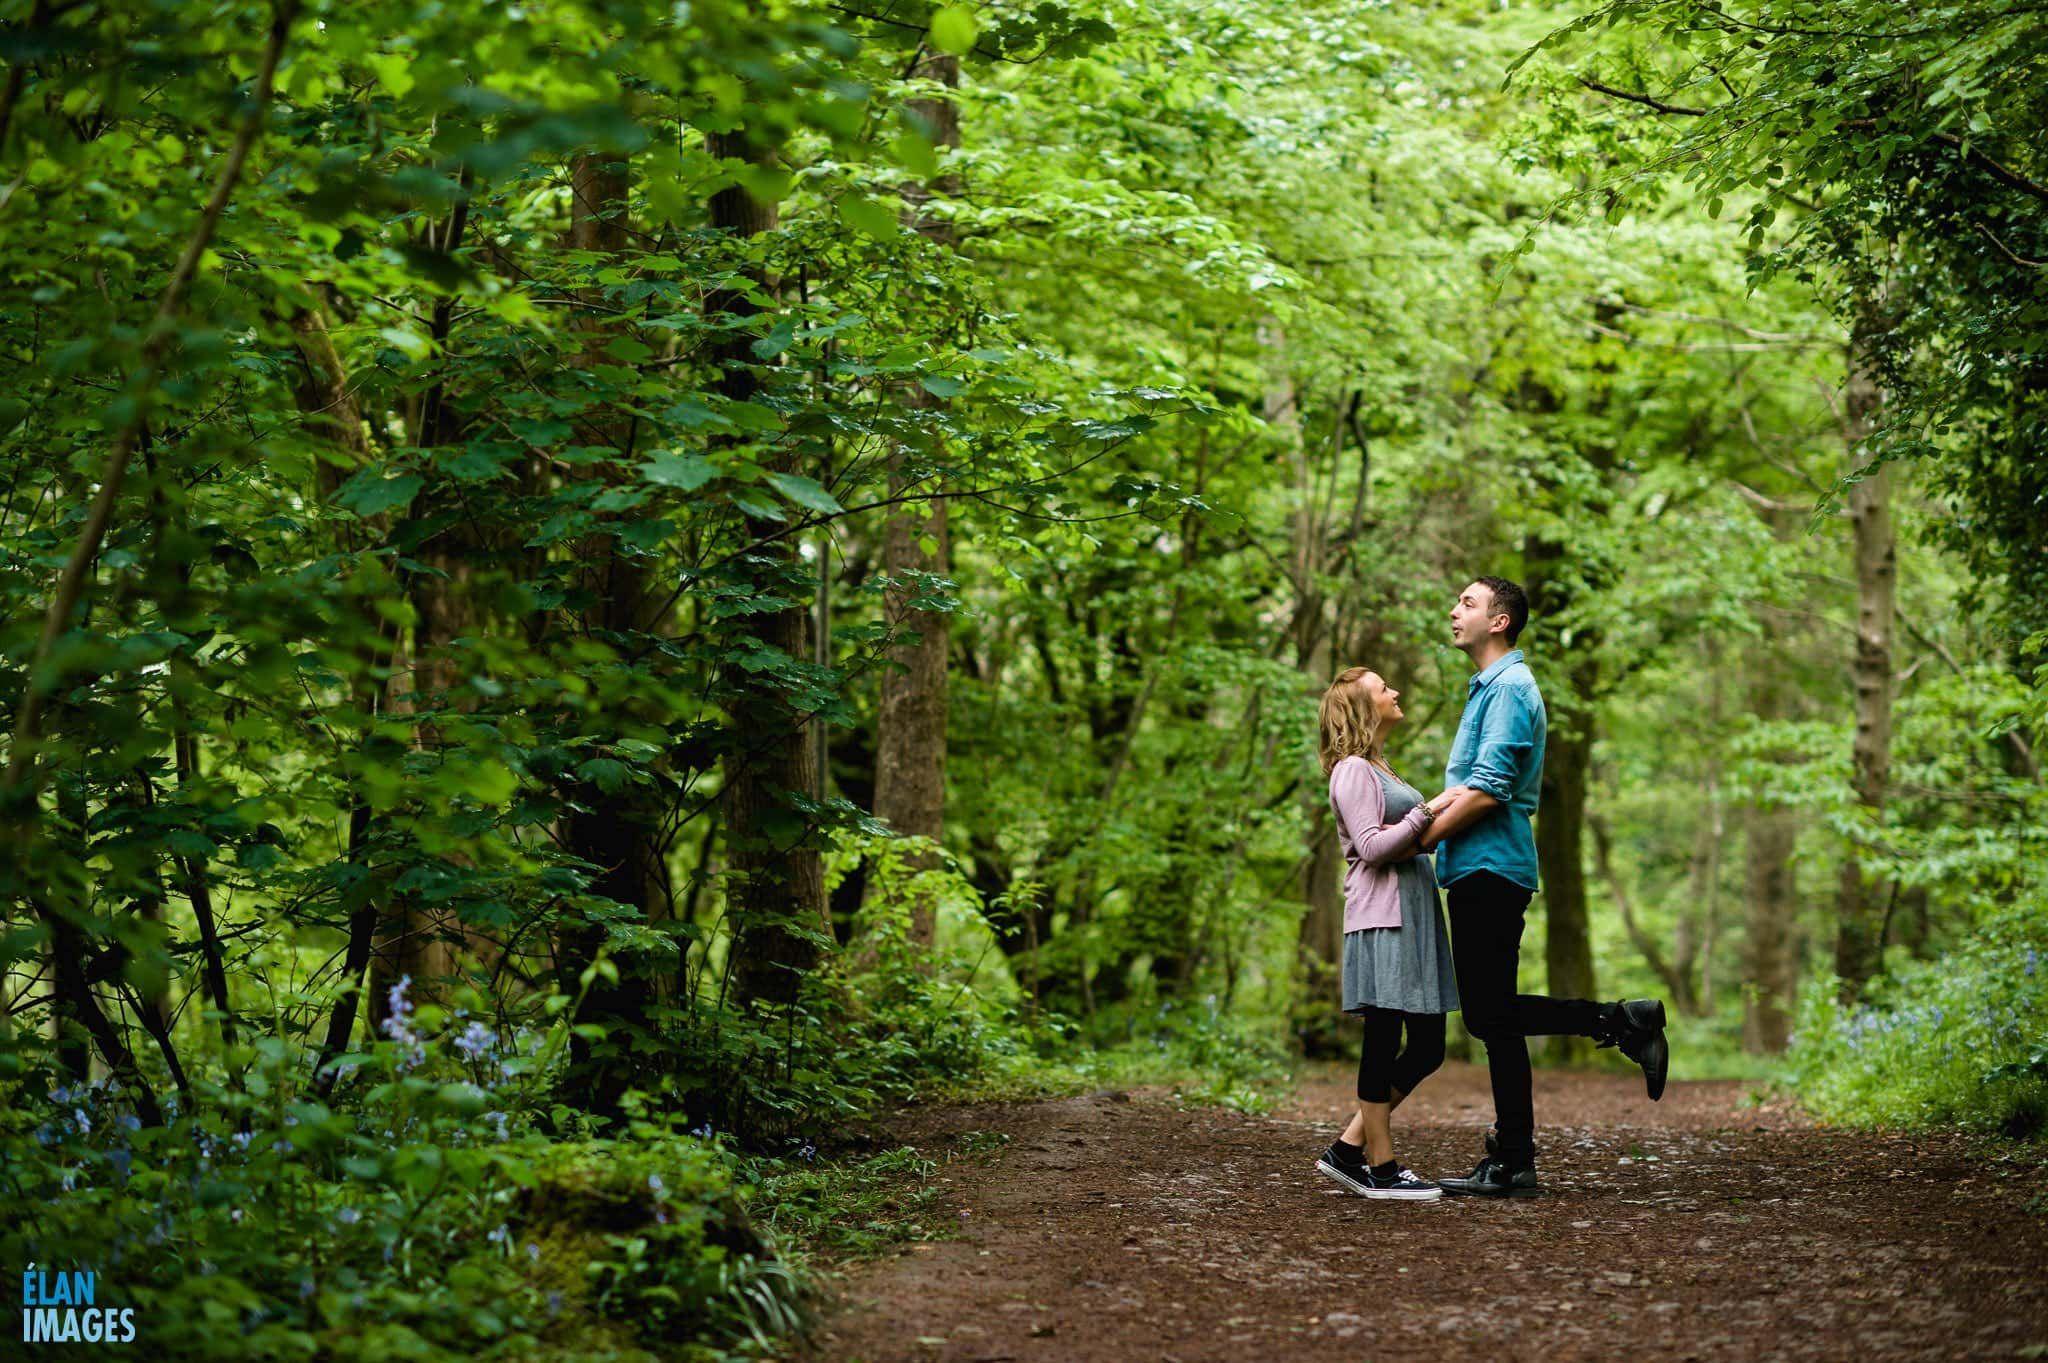 Engagement Photo Shoot in the Bluebell Woods near Bristol 8